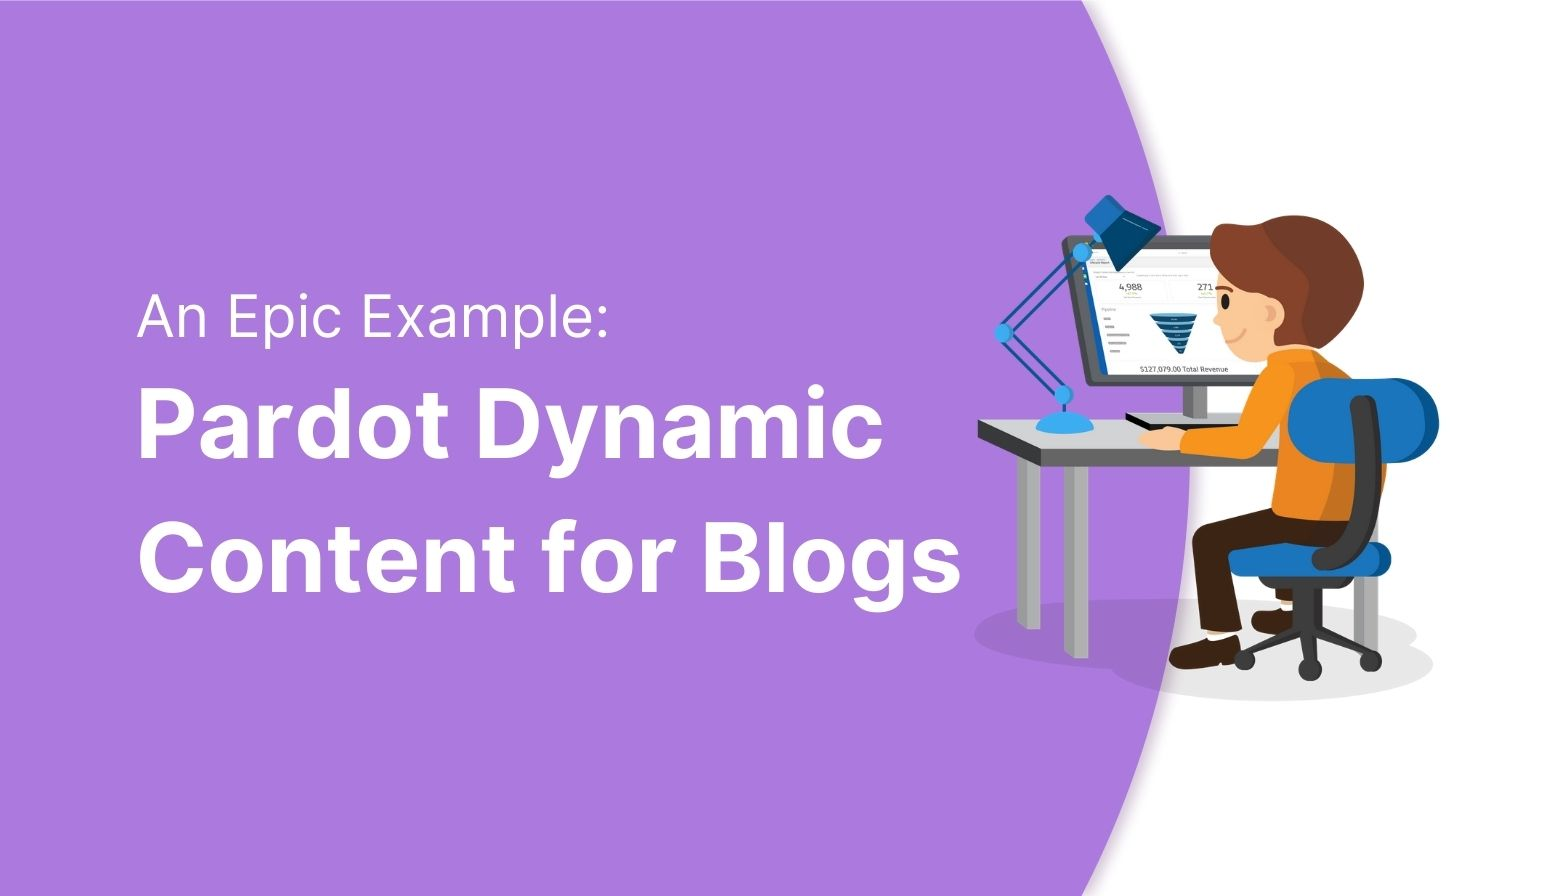 Example of Pardot dynamic content for blogs